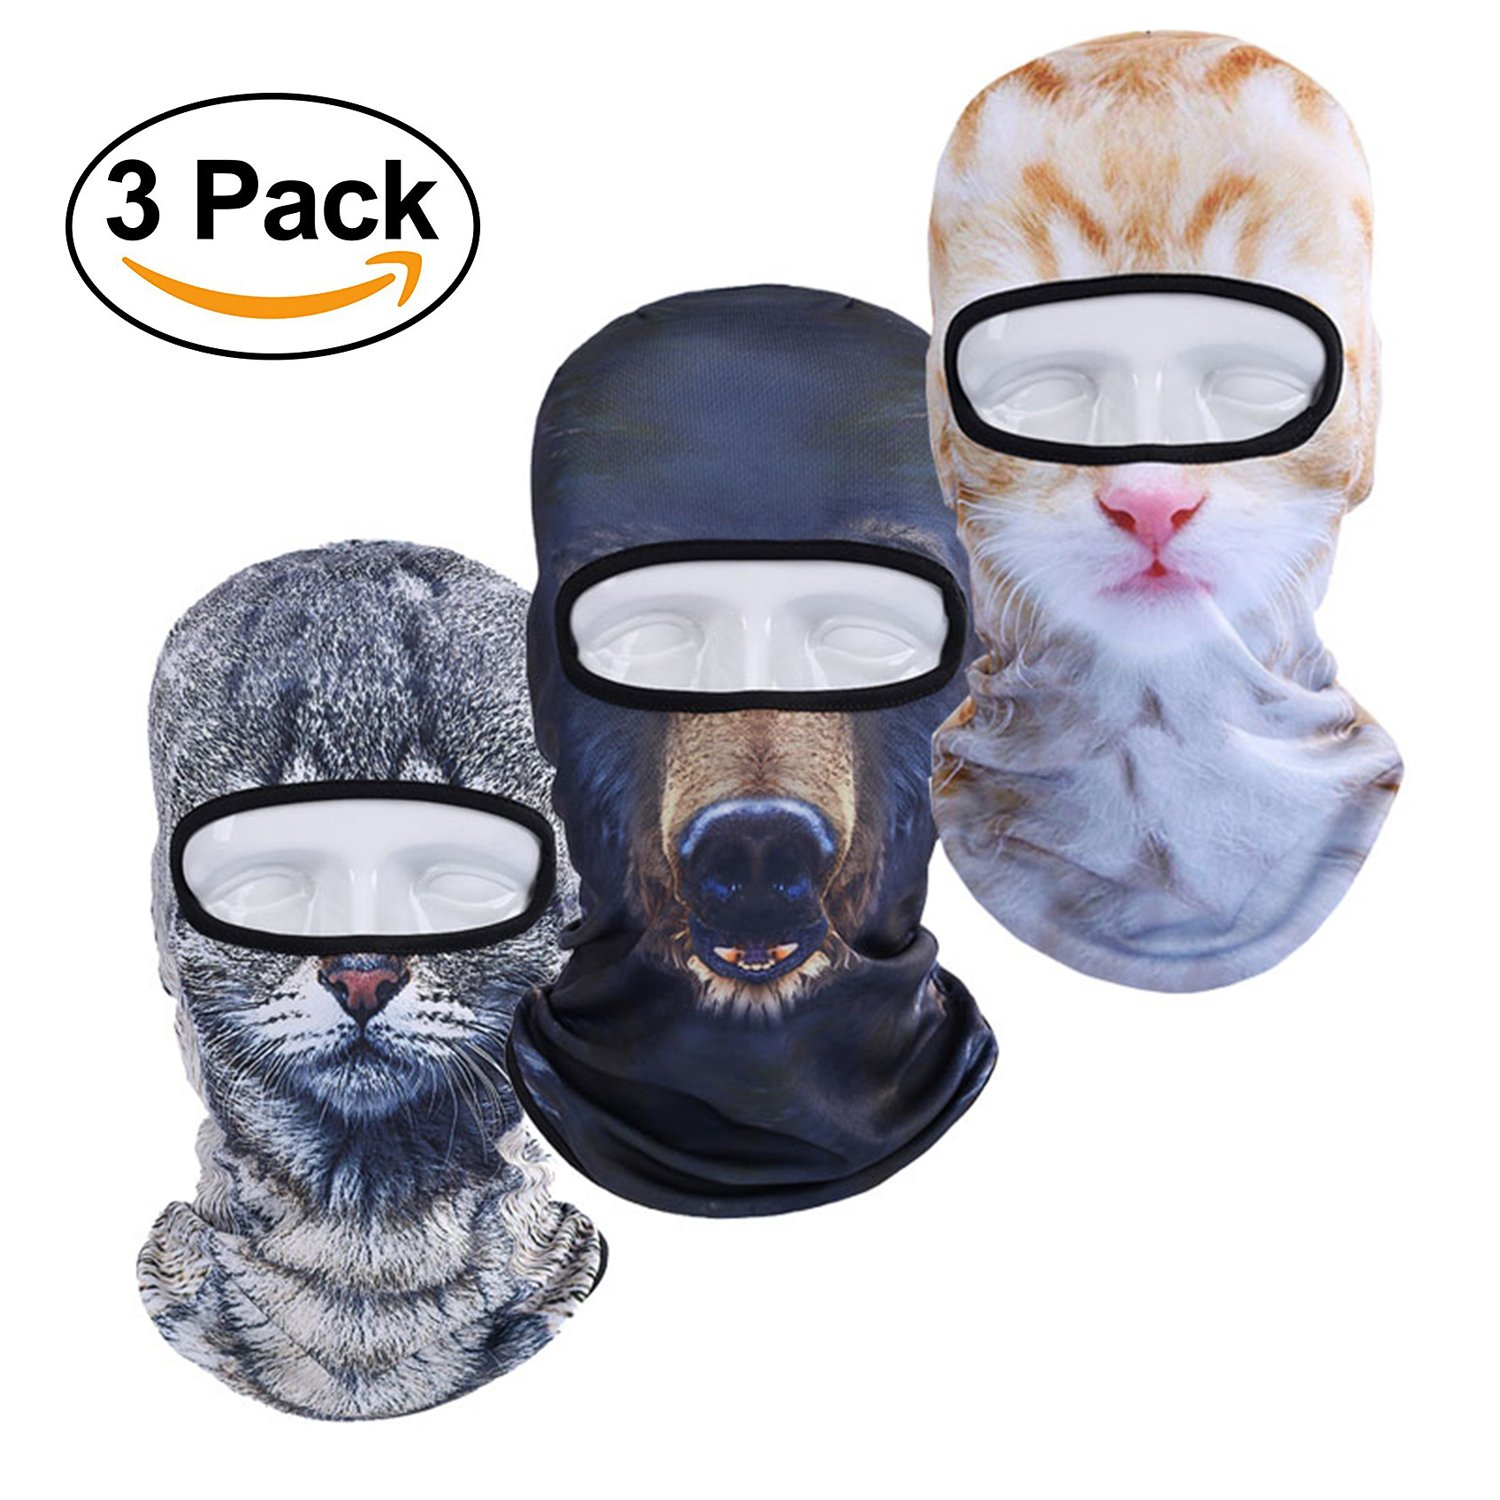 3 Pack Funny 3D Animal Balaclava Face Mask Breathable Windproof UV Protection for Cycling Ski Hunting Halloween Party